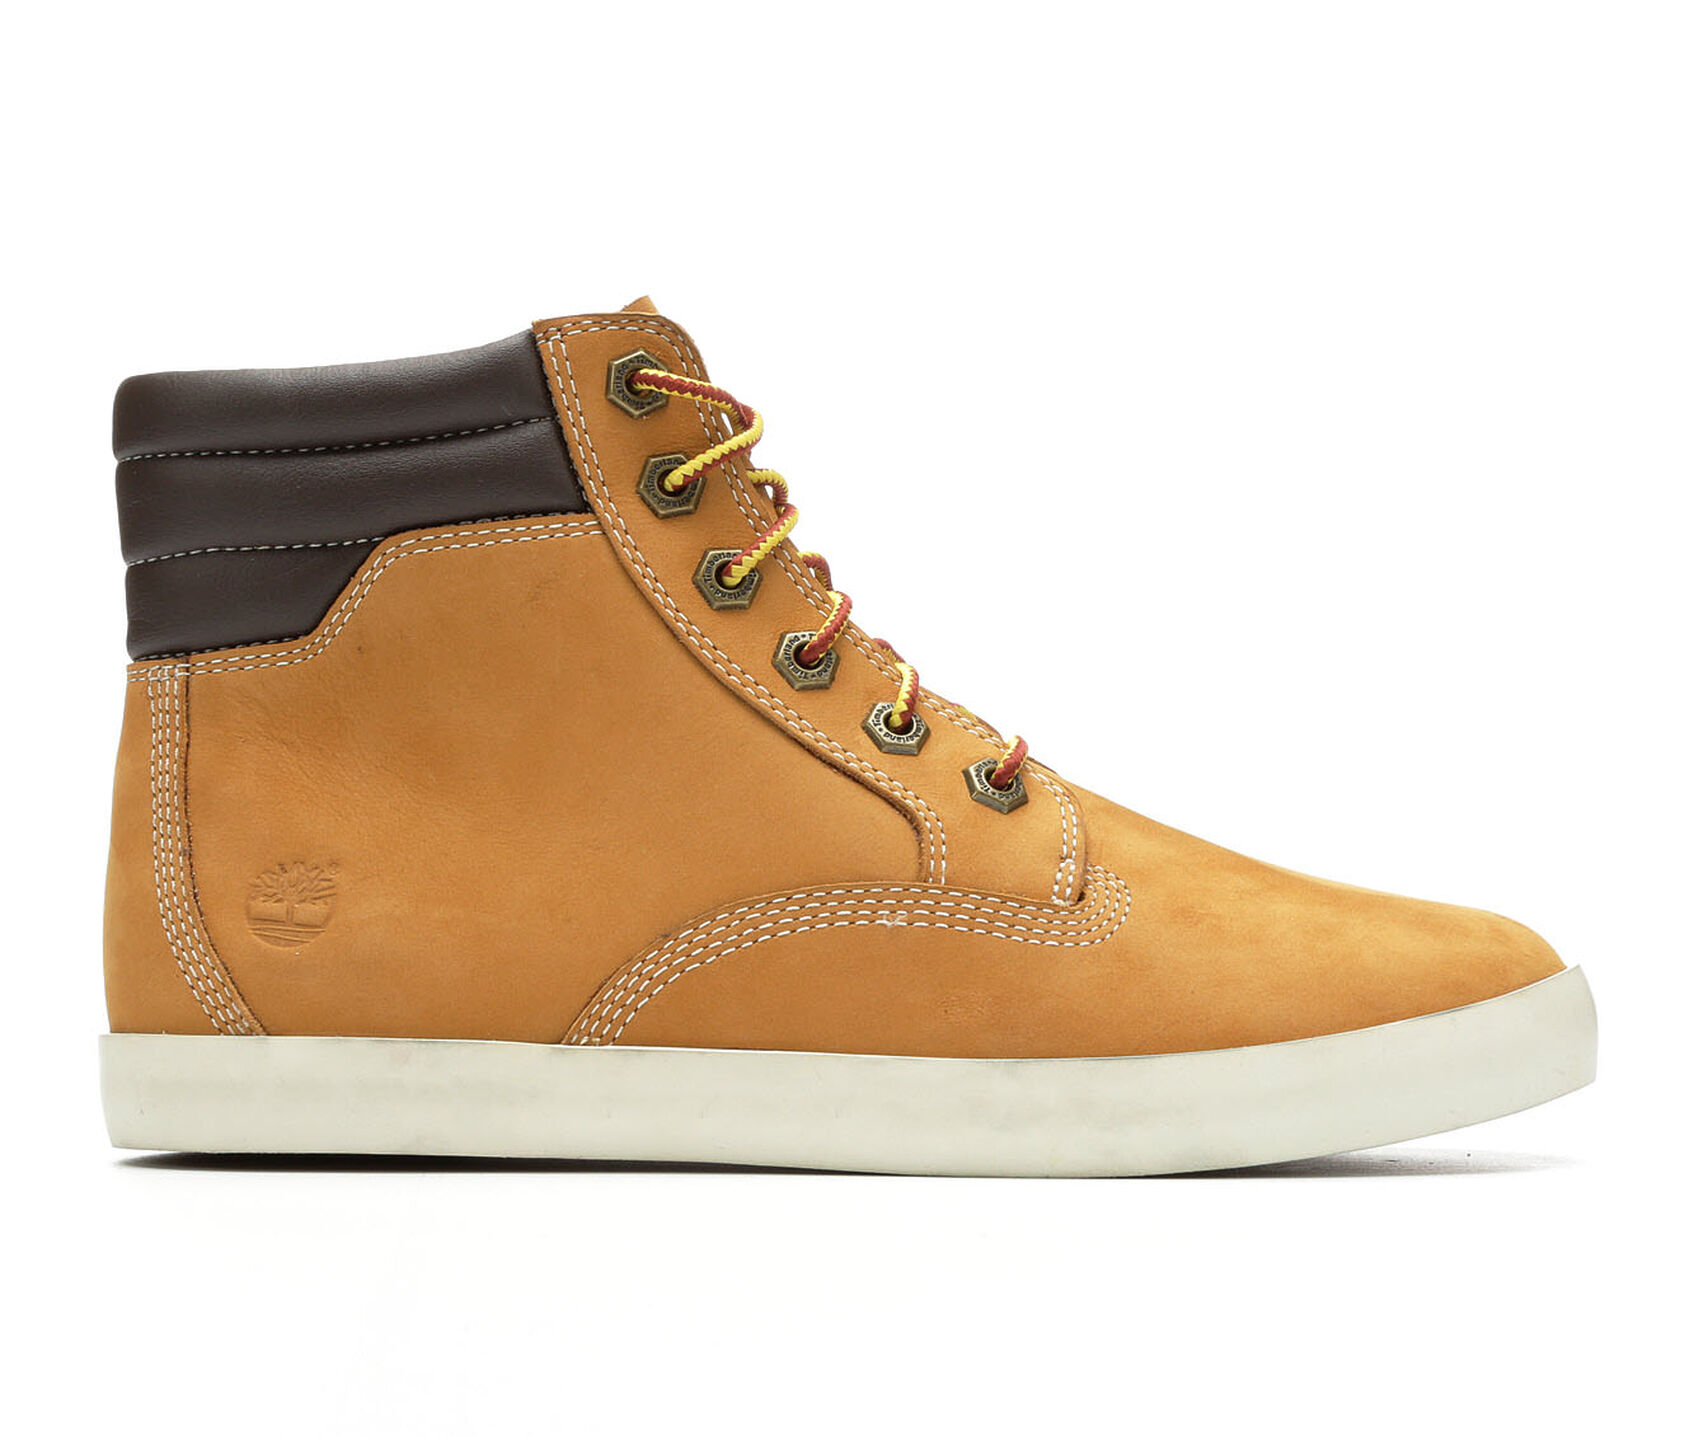 no sale tax elegant shoes good selling Women's Timberland Dausette Sneaker Boots